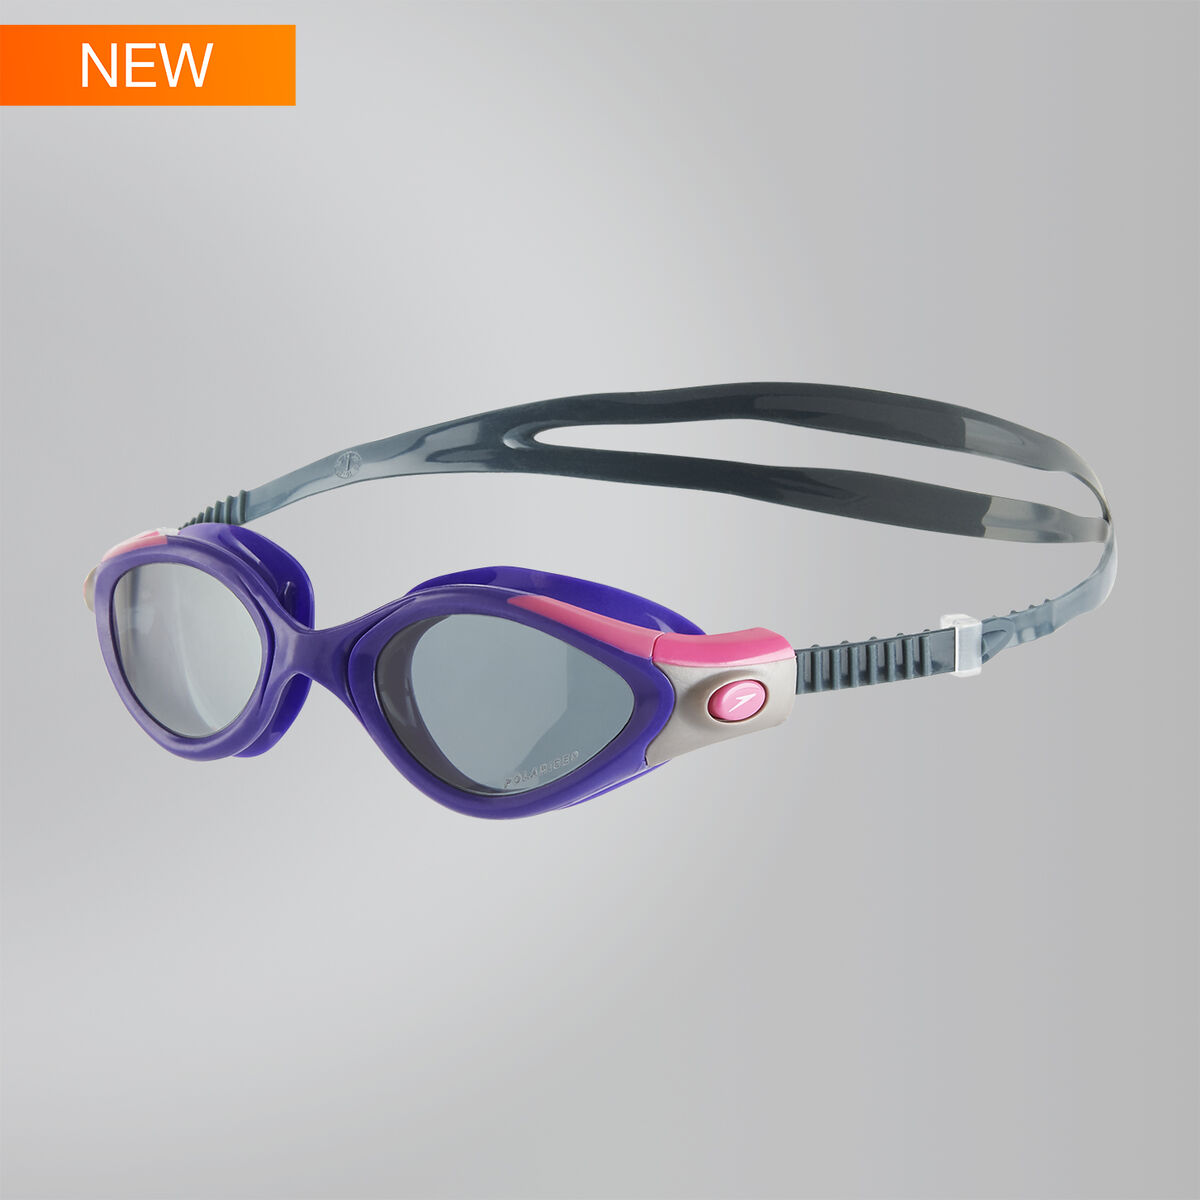 Futura Biofuse 2 Polarised Female Goggle